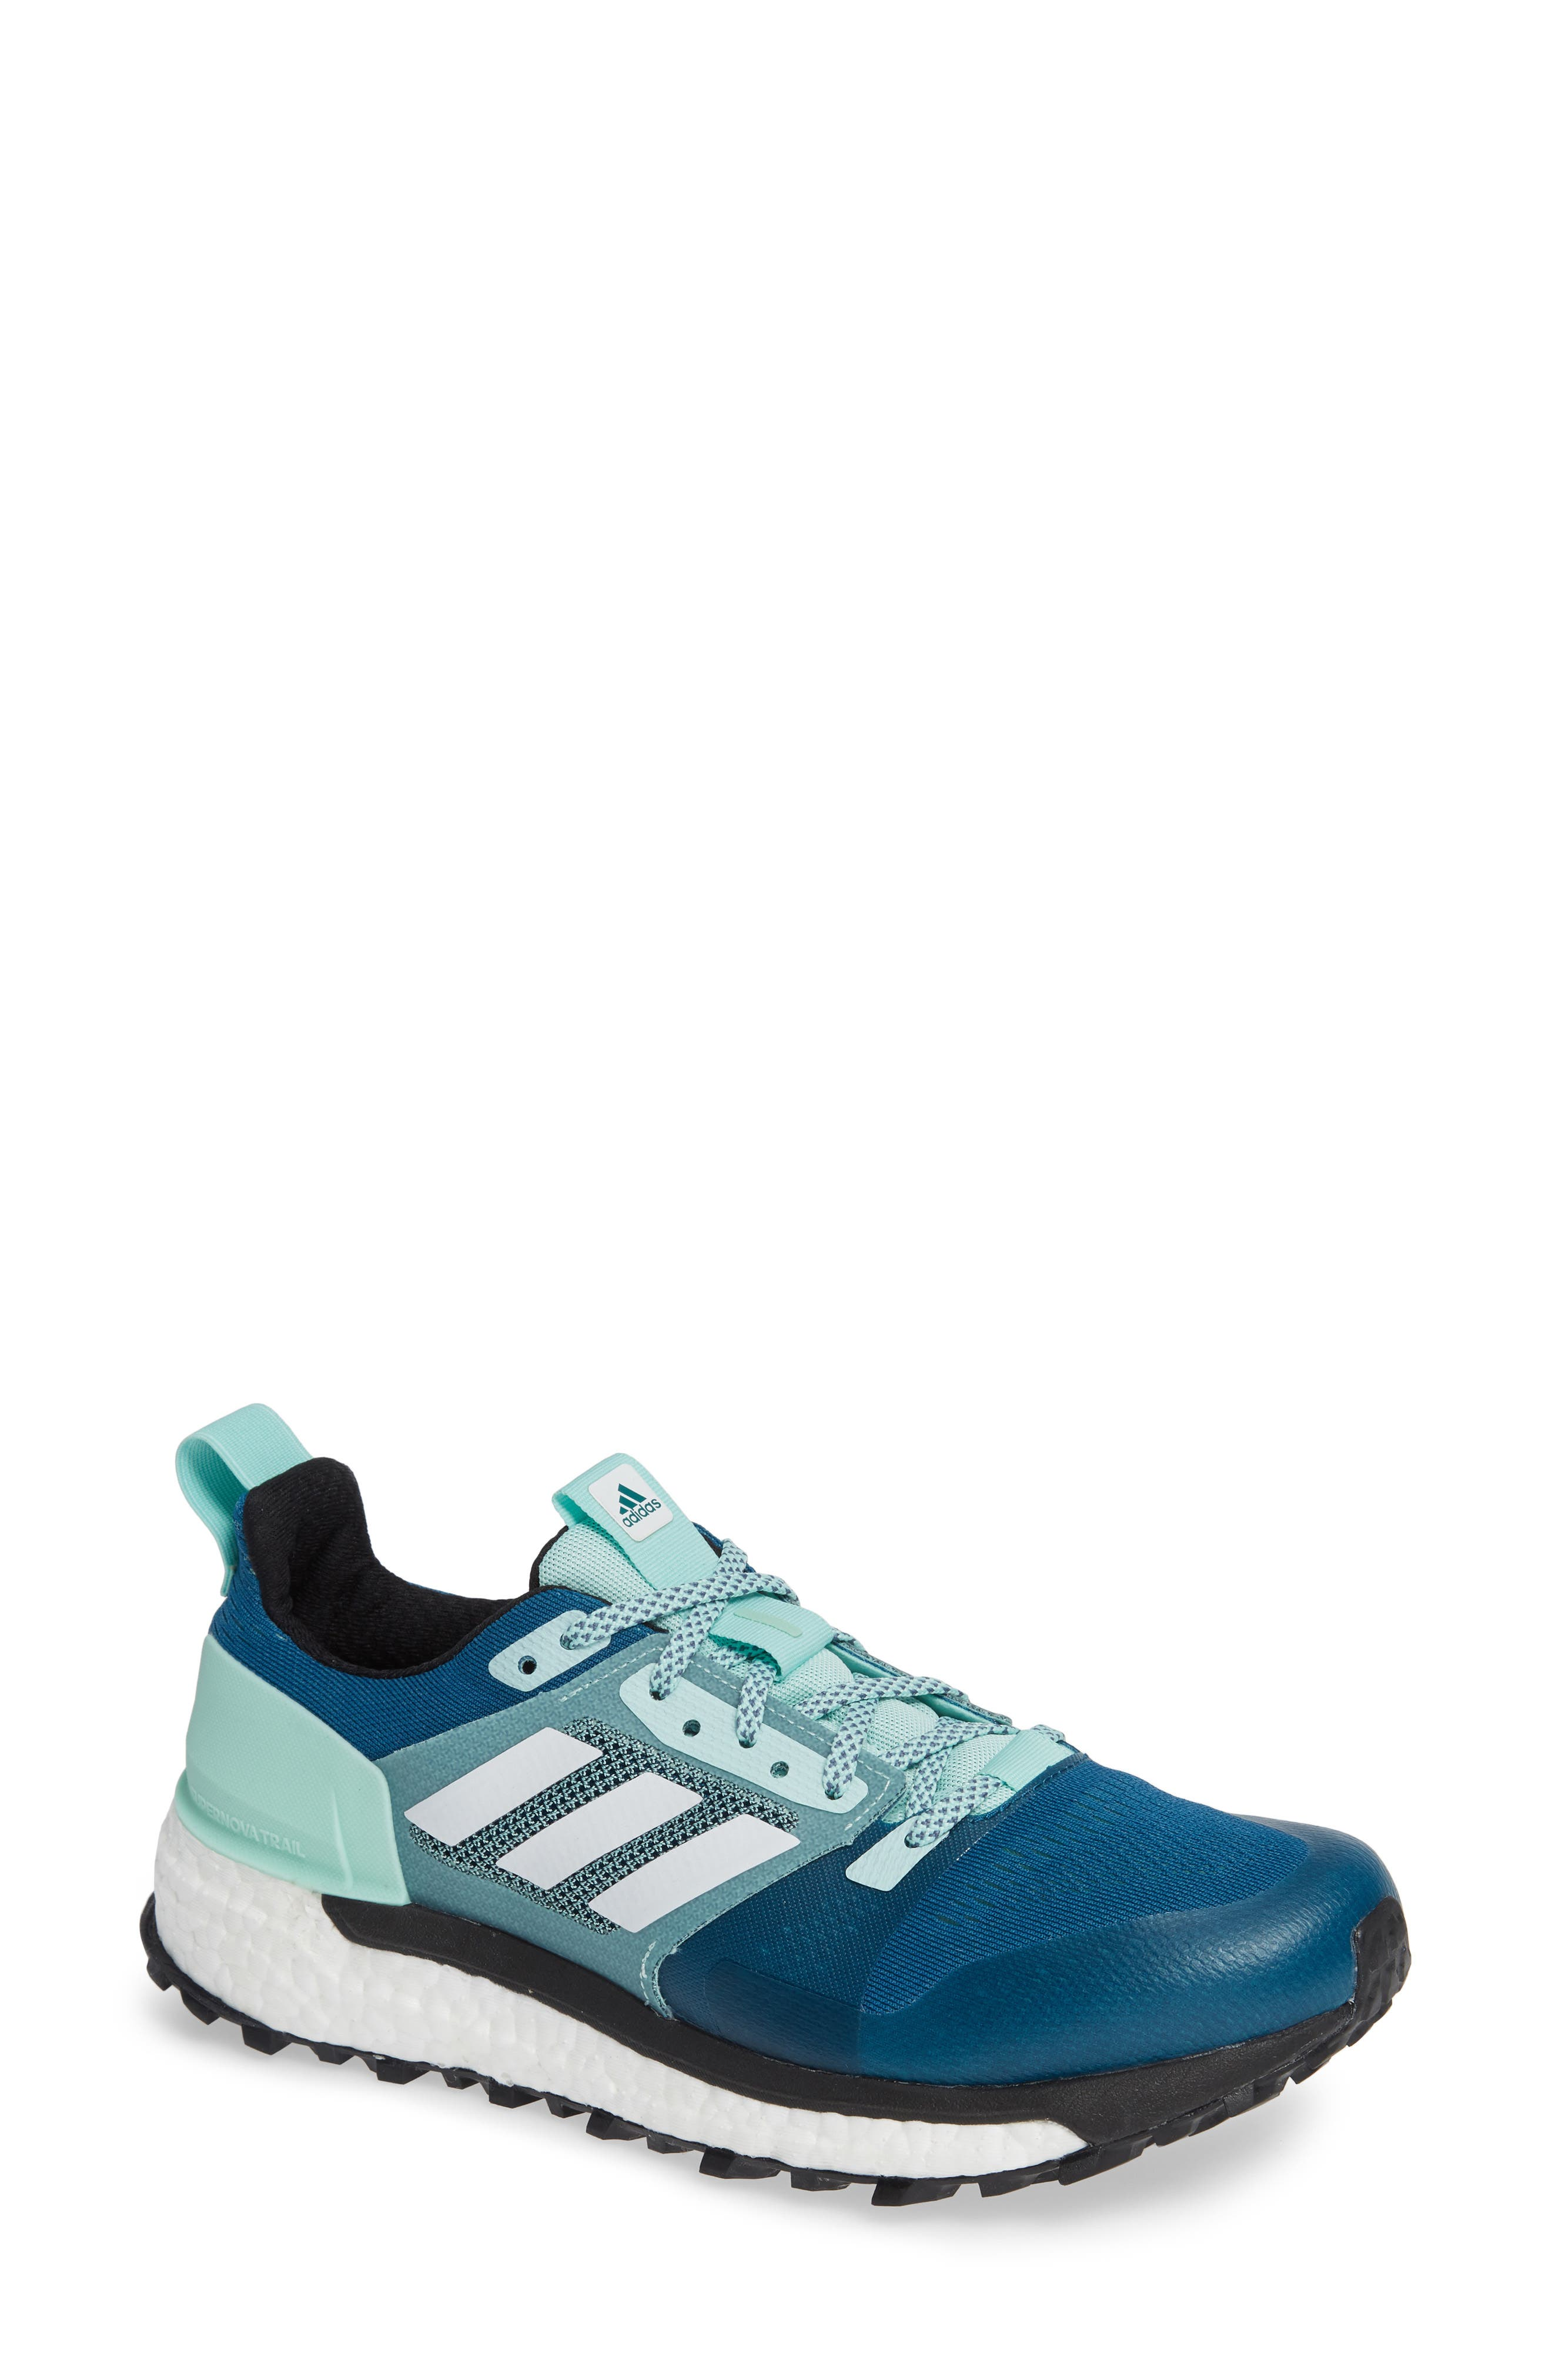 Supernova Trail Running Shoe,                             Main thumbnail 1, color,                             REAL TEAL/ WHITE/ CLEAR MINT